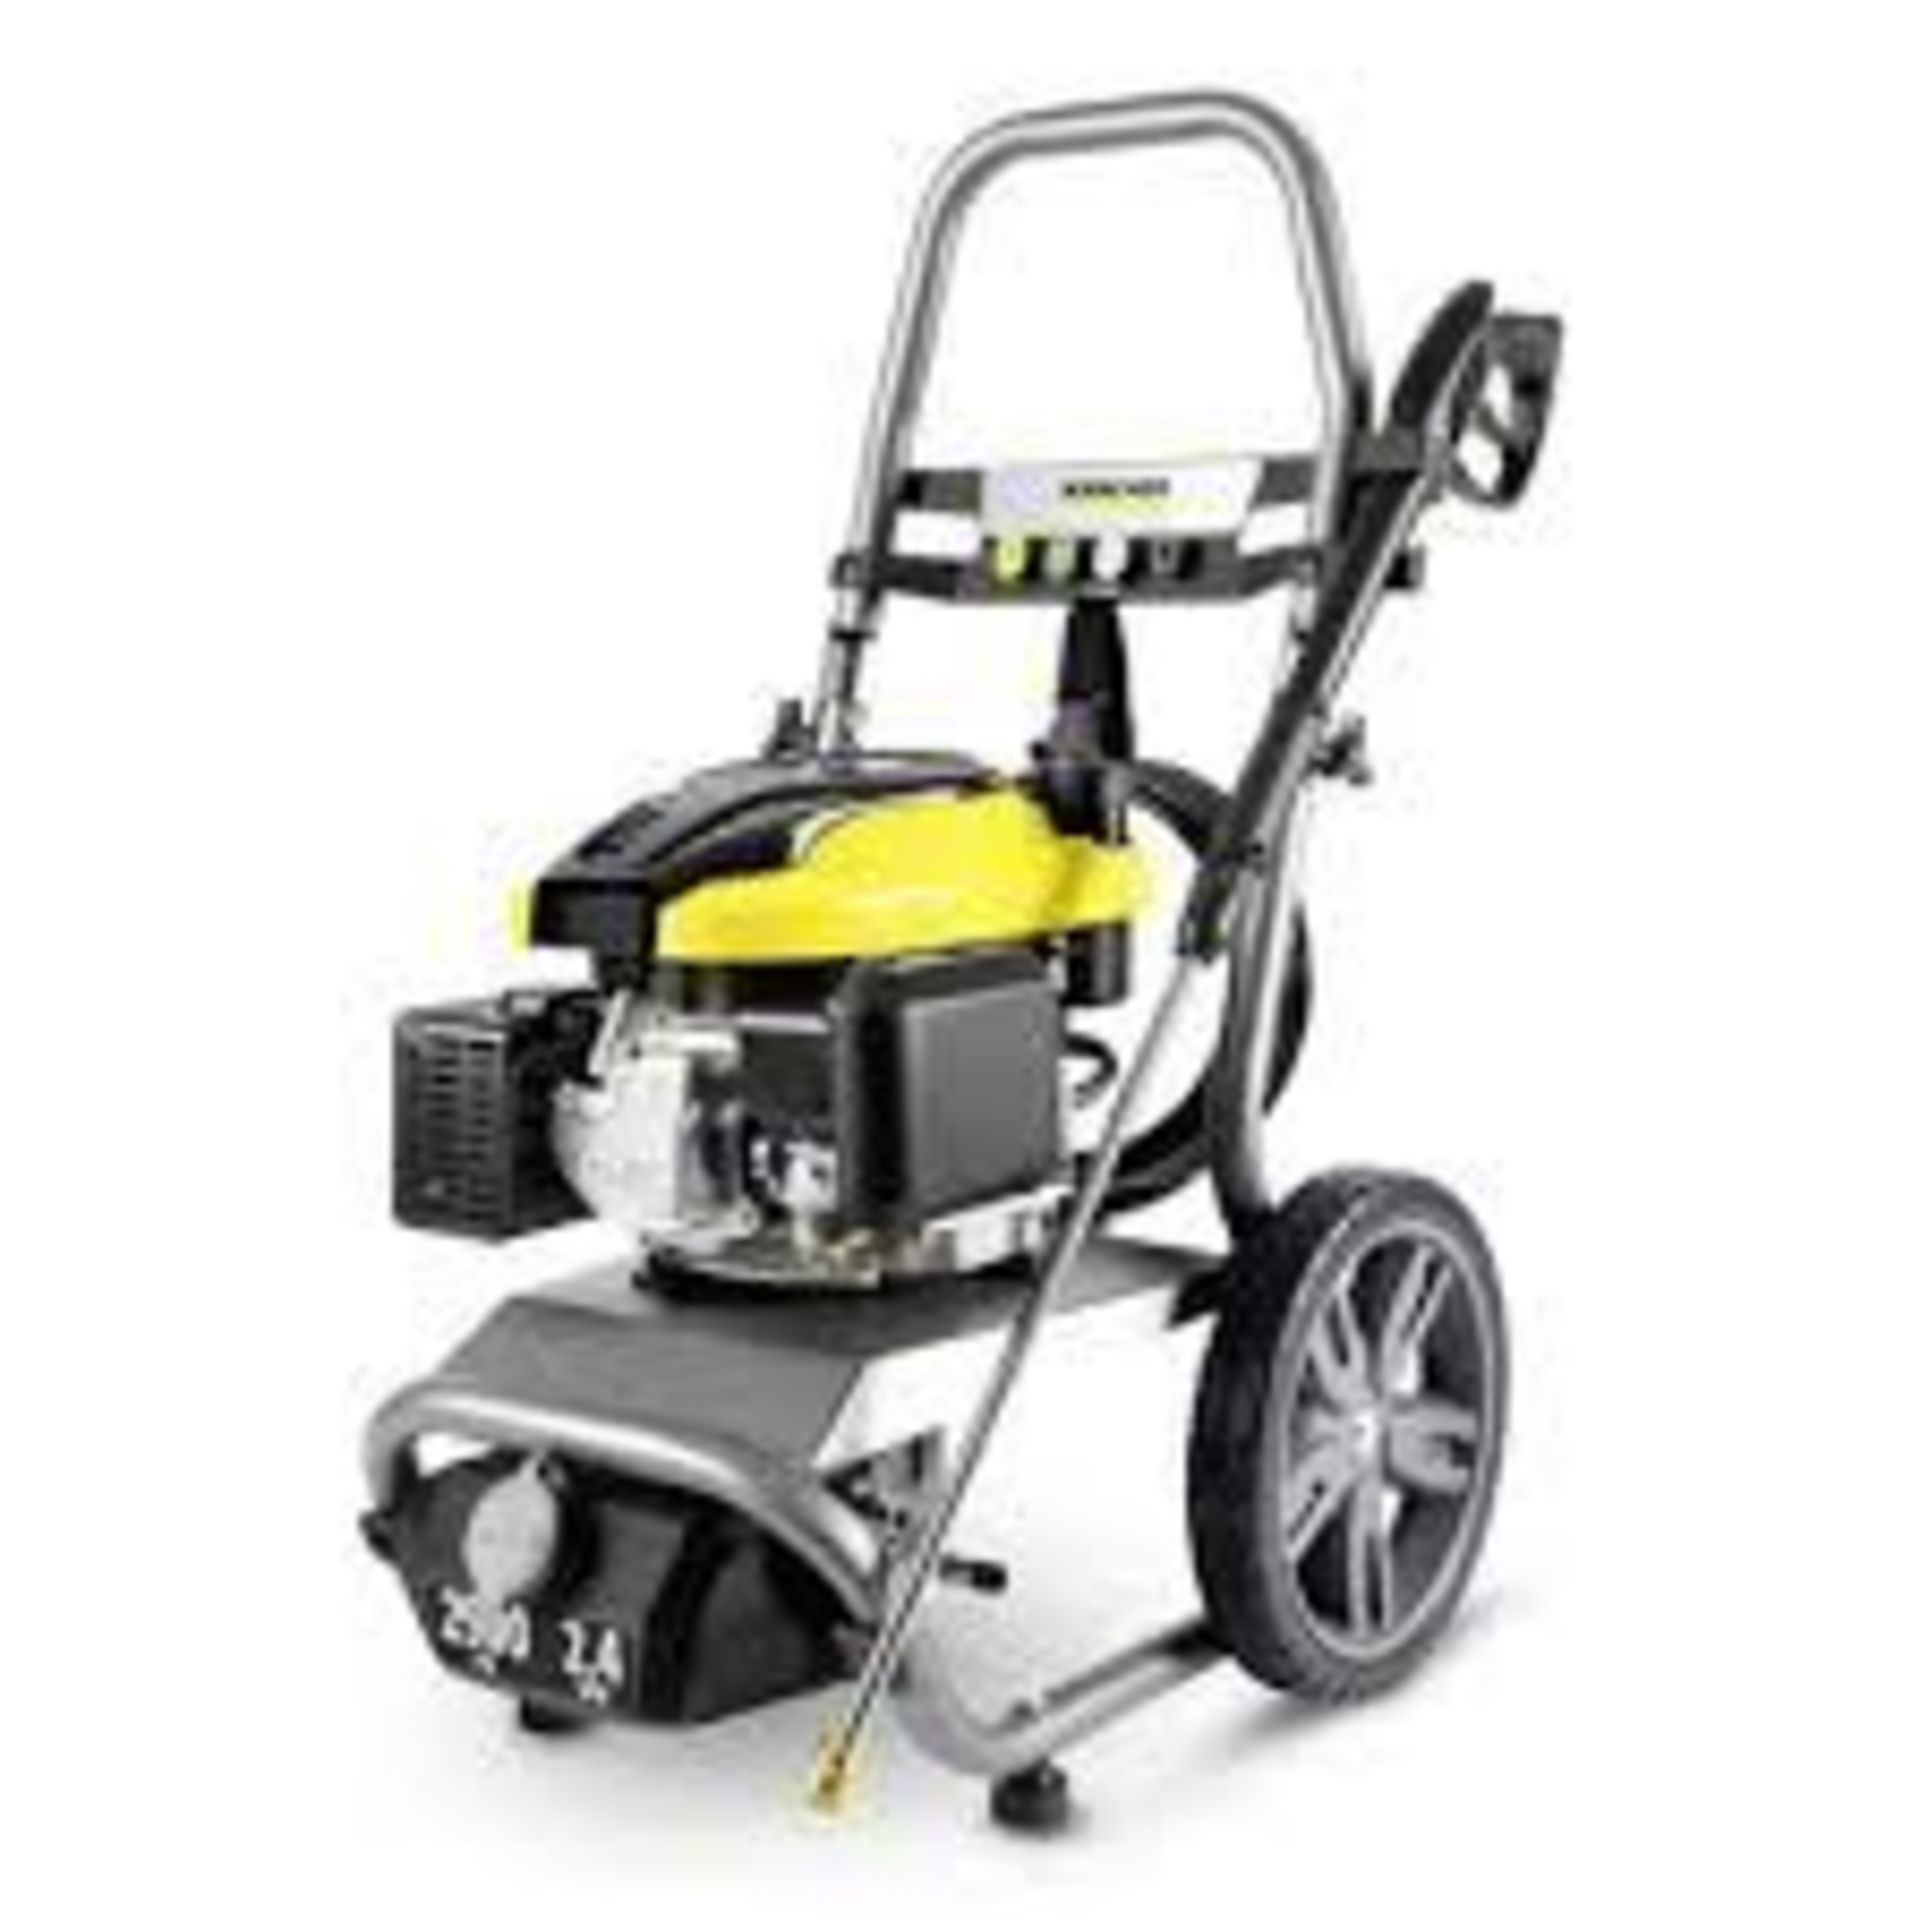 Lot 9 - Karcher G2900x 2900psi Petrol Jet Washer